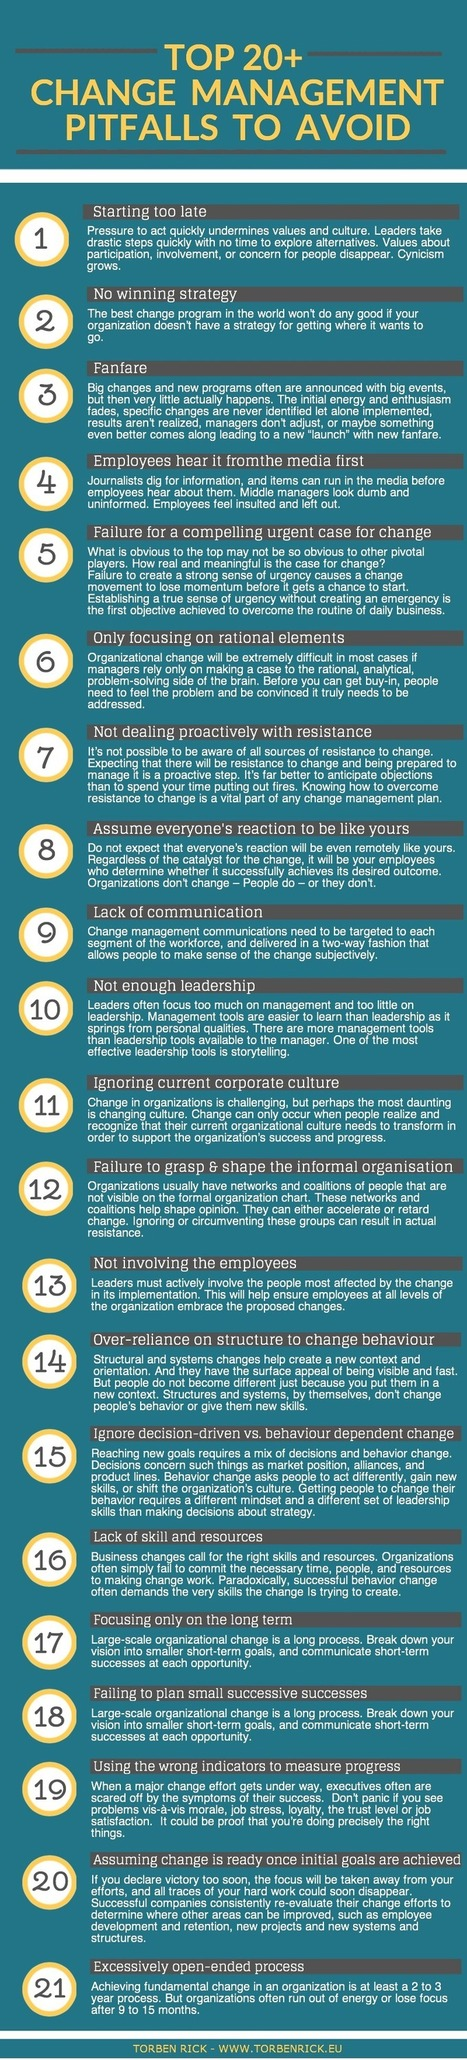 Infographic: Top 20+ organizational change management pitfalls | Organisational Project Leadership | Scoop.it